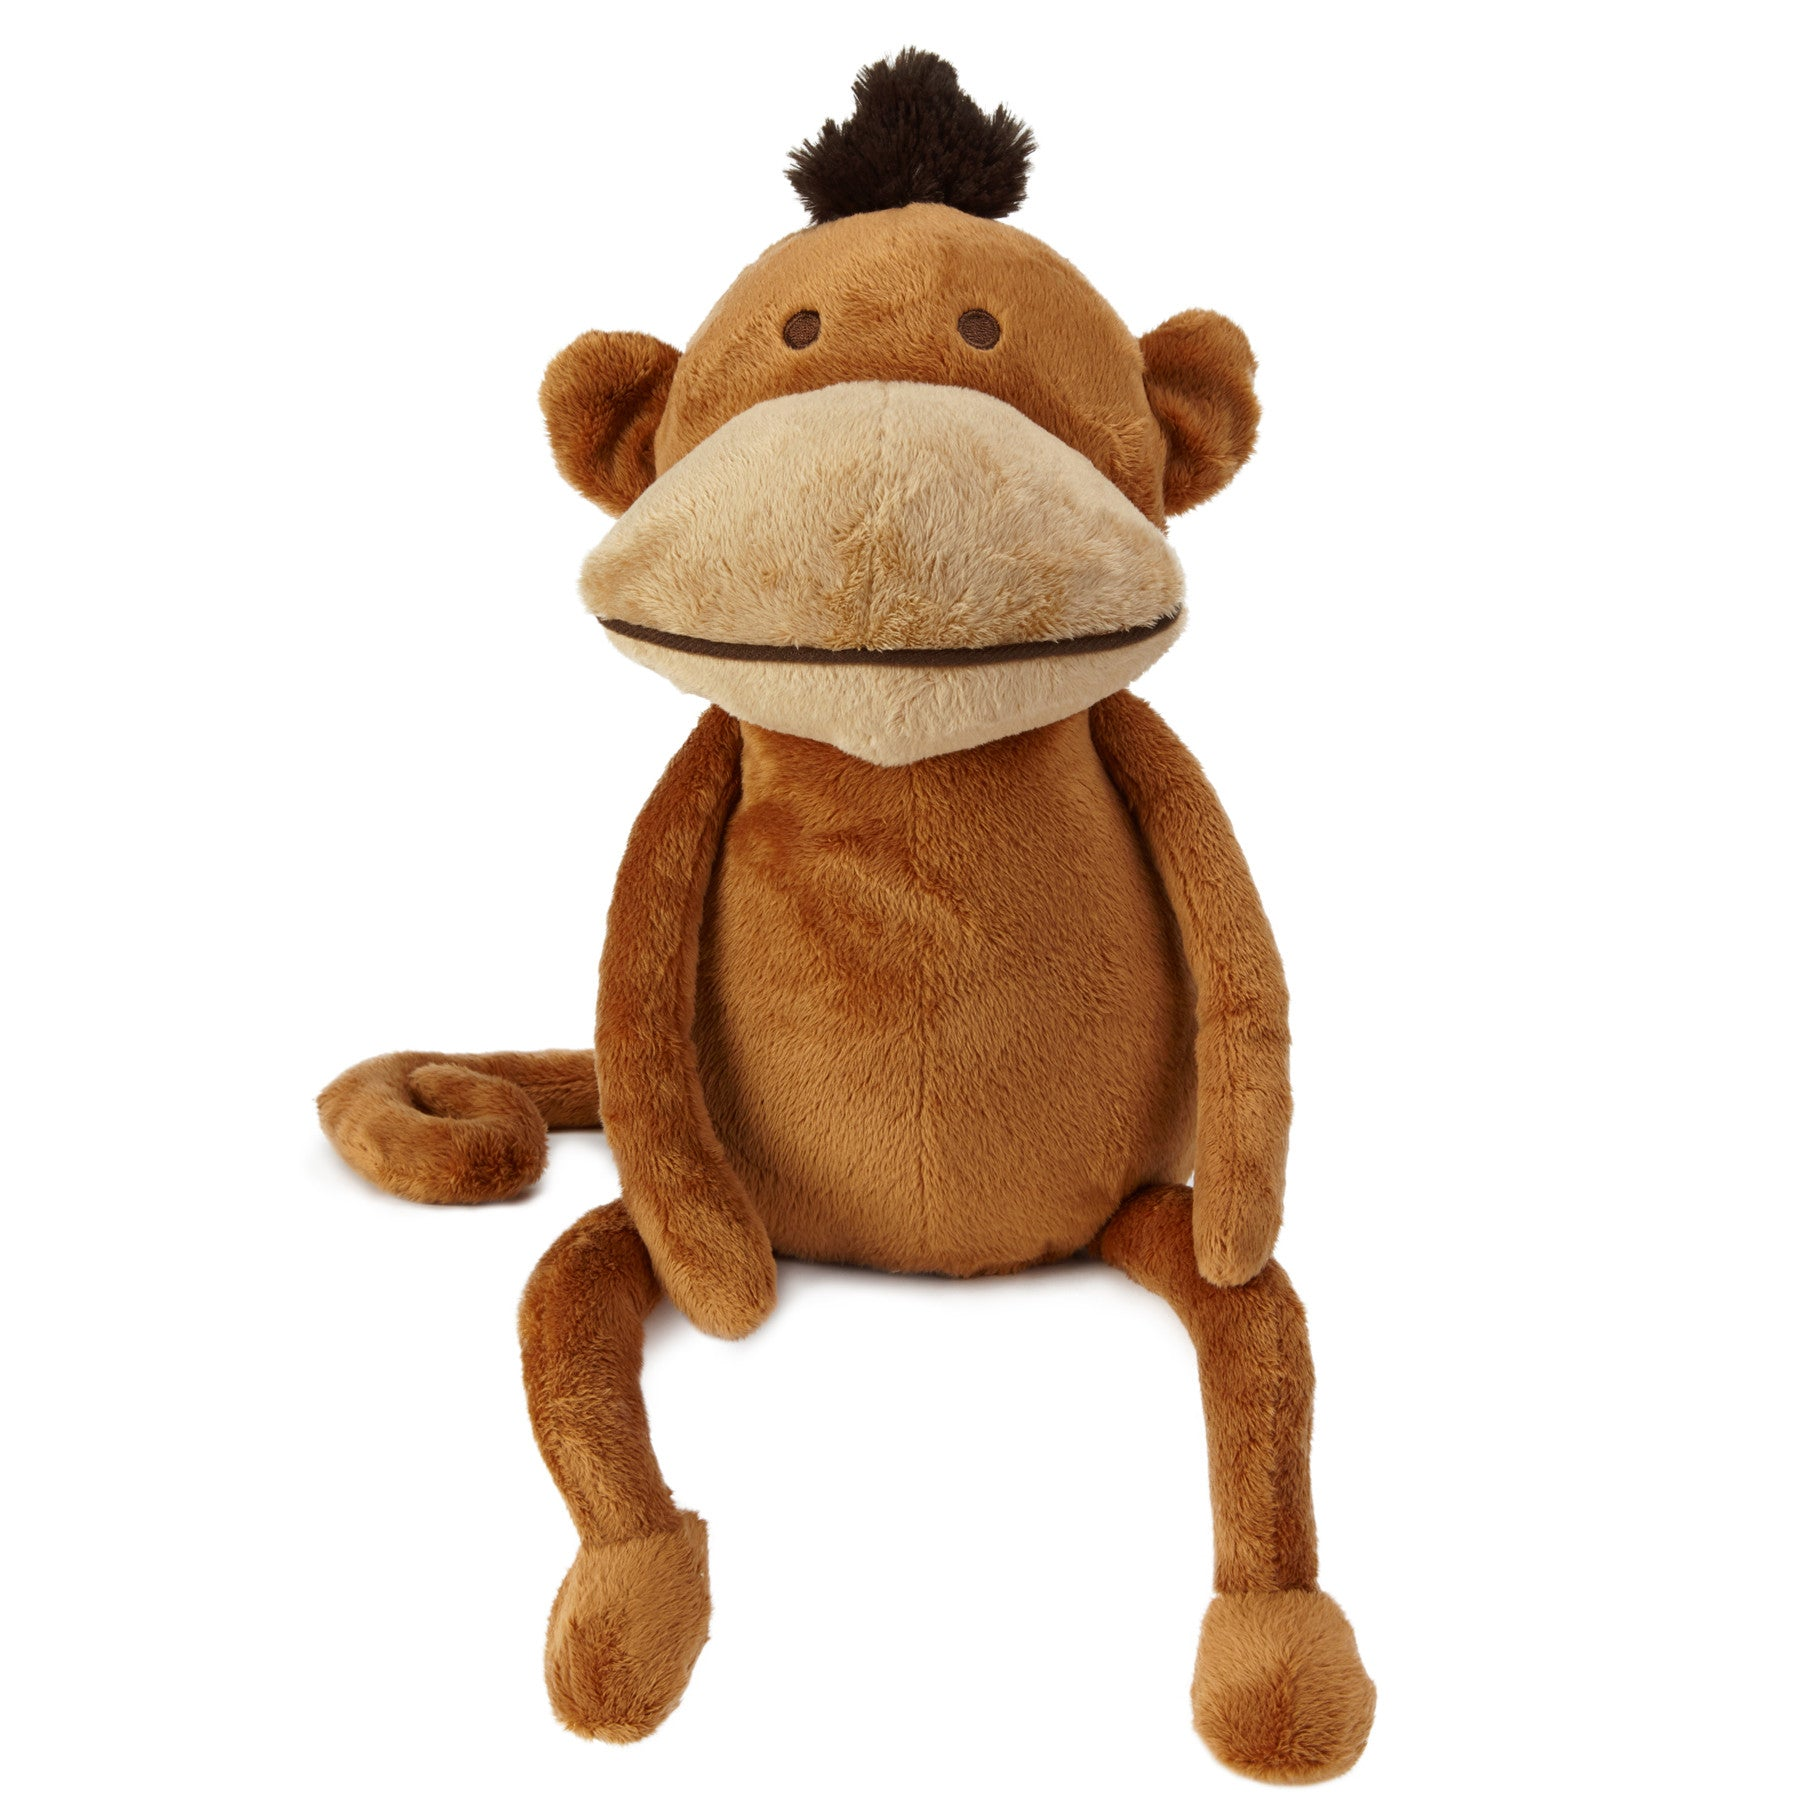 Instant Gratification Monkey Plush Toy (SOLD OUT)